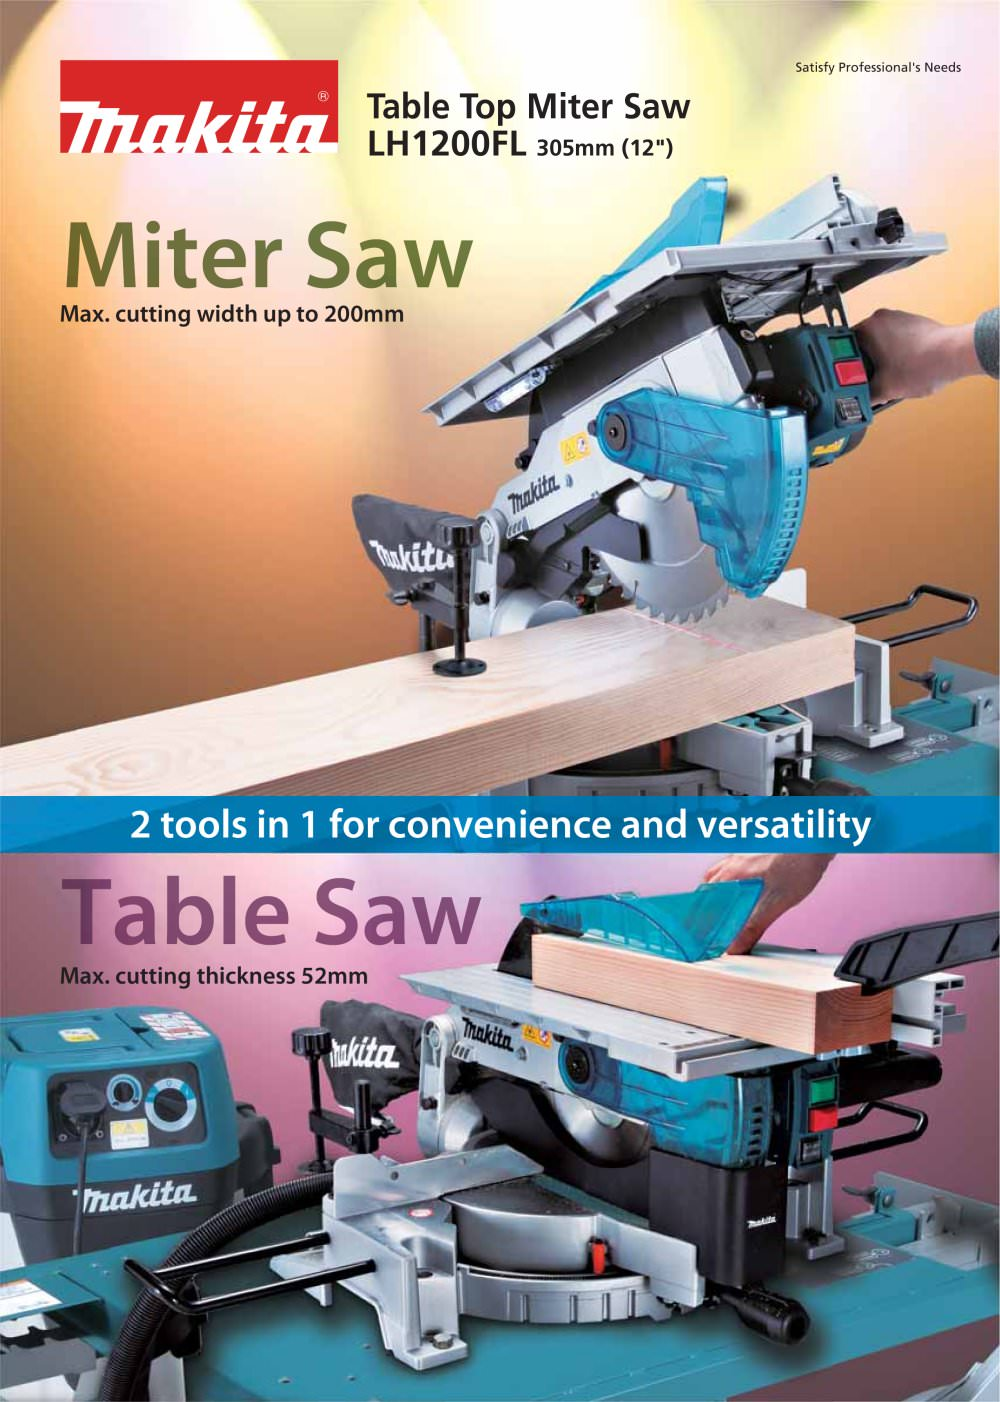 Table Top Miter Saw LH1200FL   1 / 2 Pages